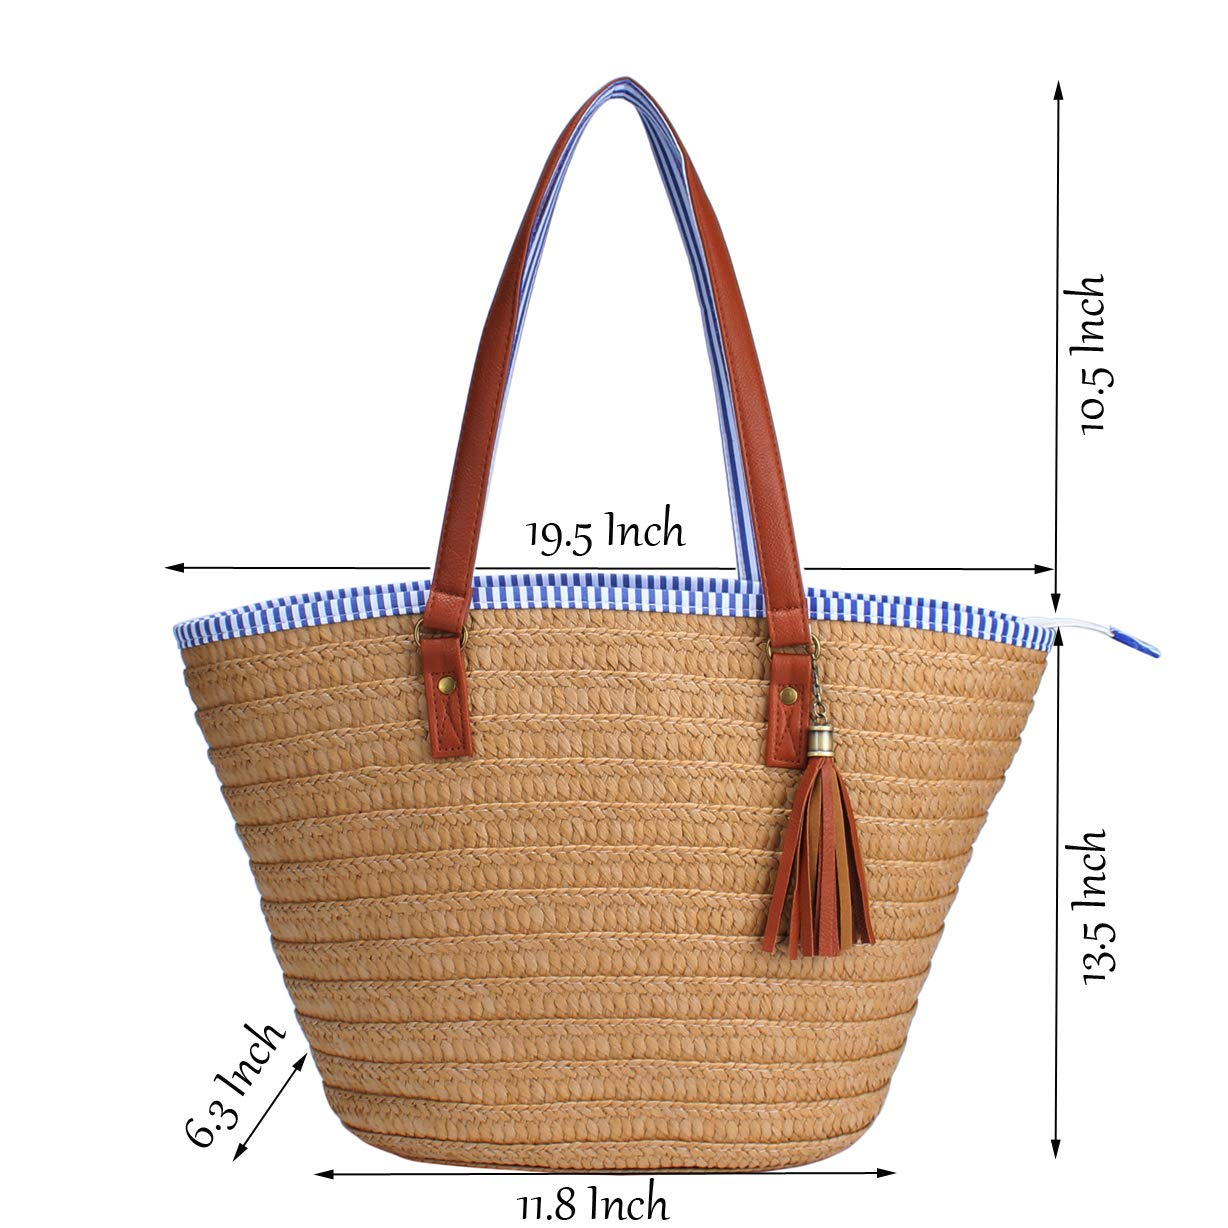 Sornean Straw Beach Bag Handbags Shoulder Bag Tote,Cotton Lining,PU Leather Handle-Eco Friendly (Off White) by sornean (Image #3)